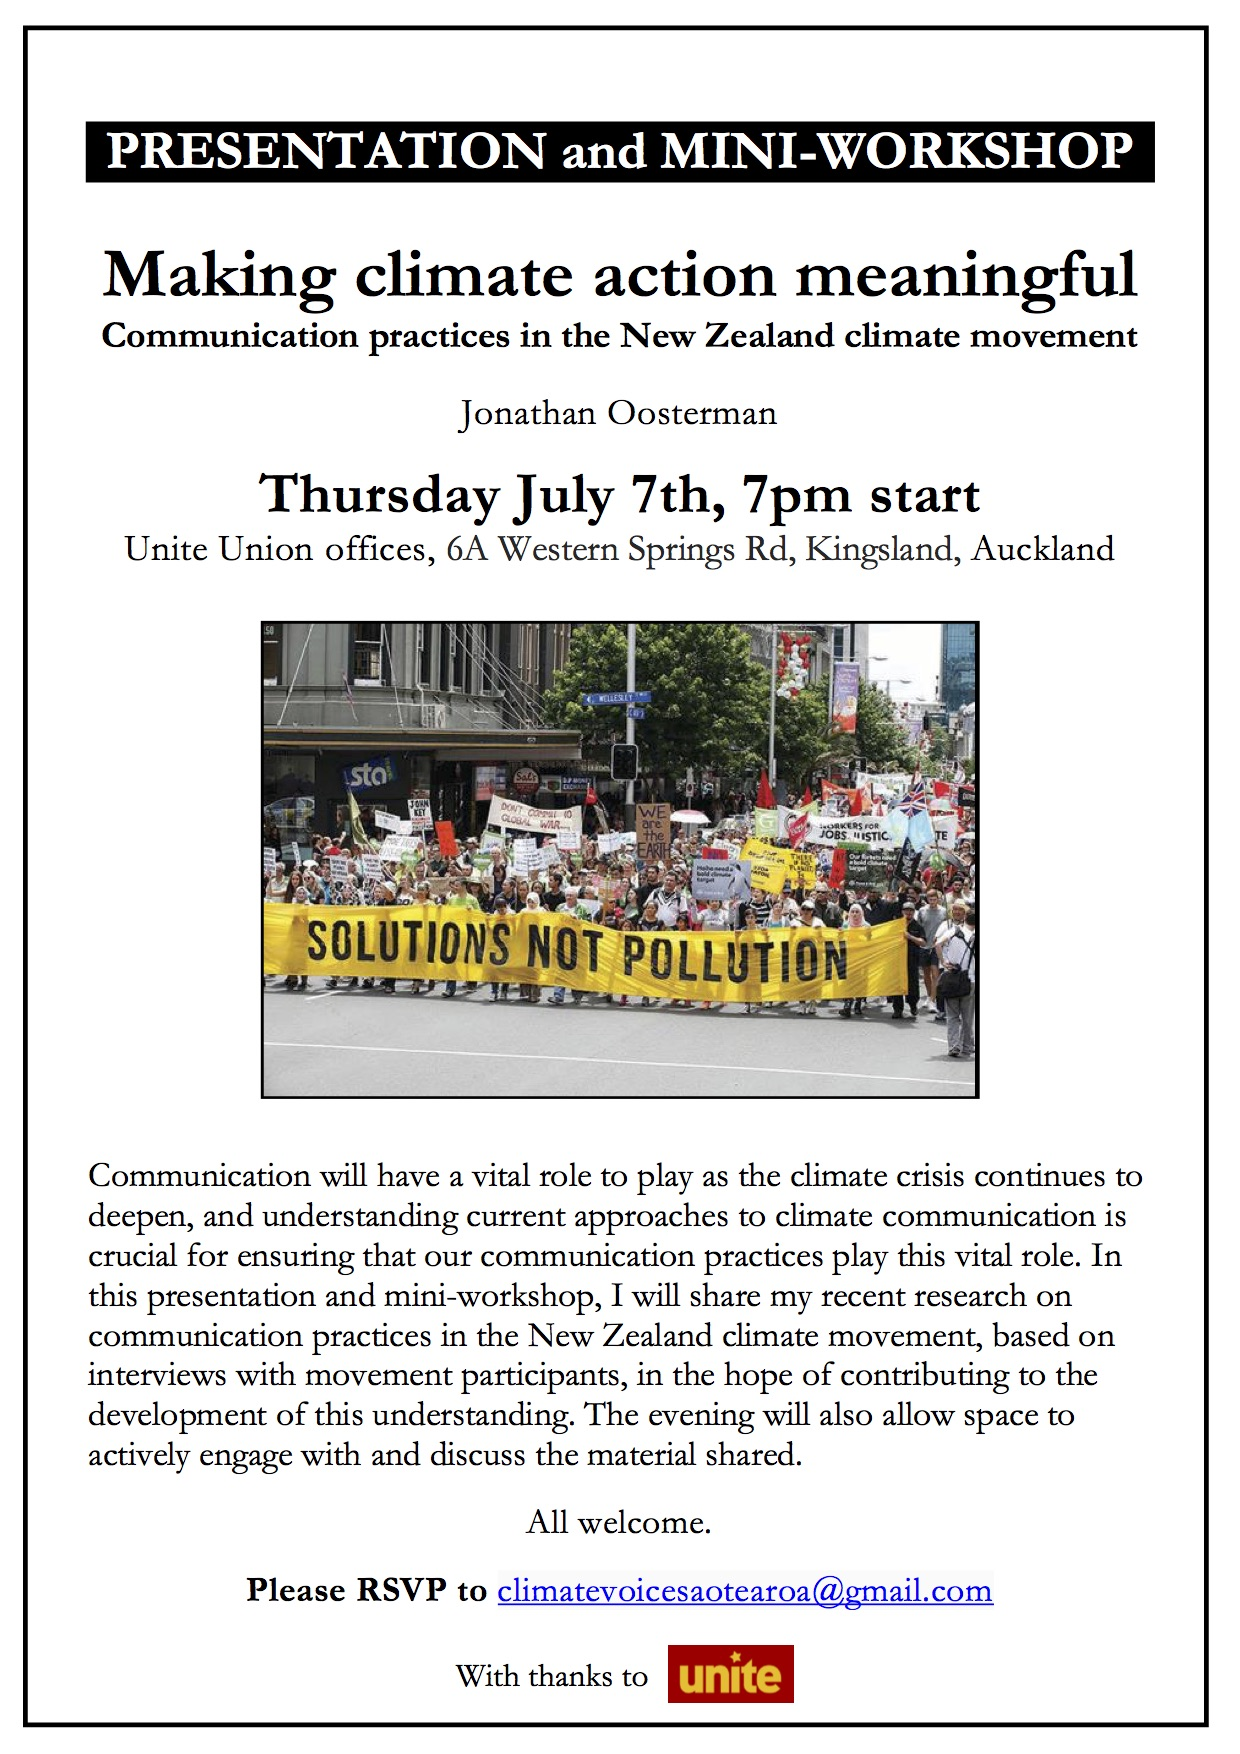 Poster - Making climate action meaningful - Auckland